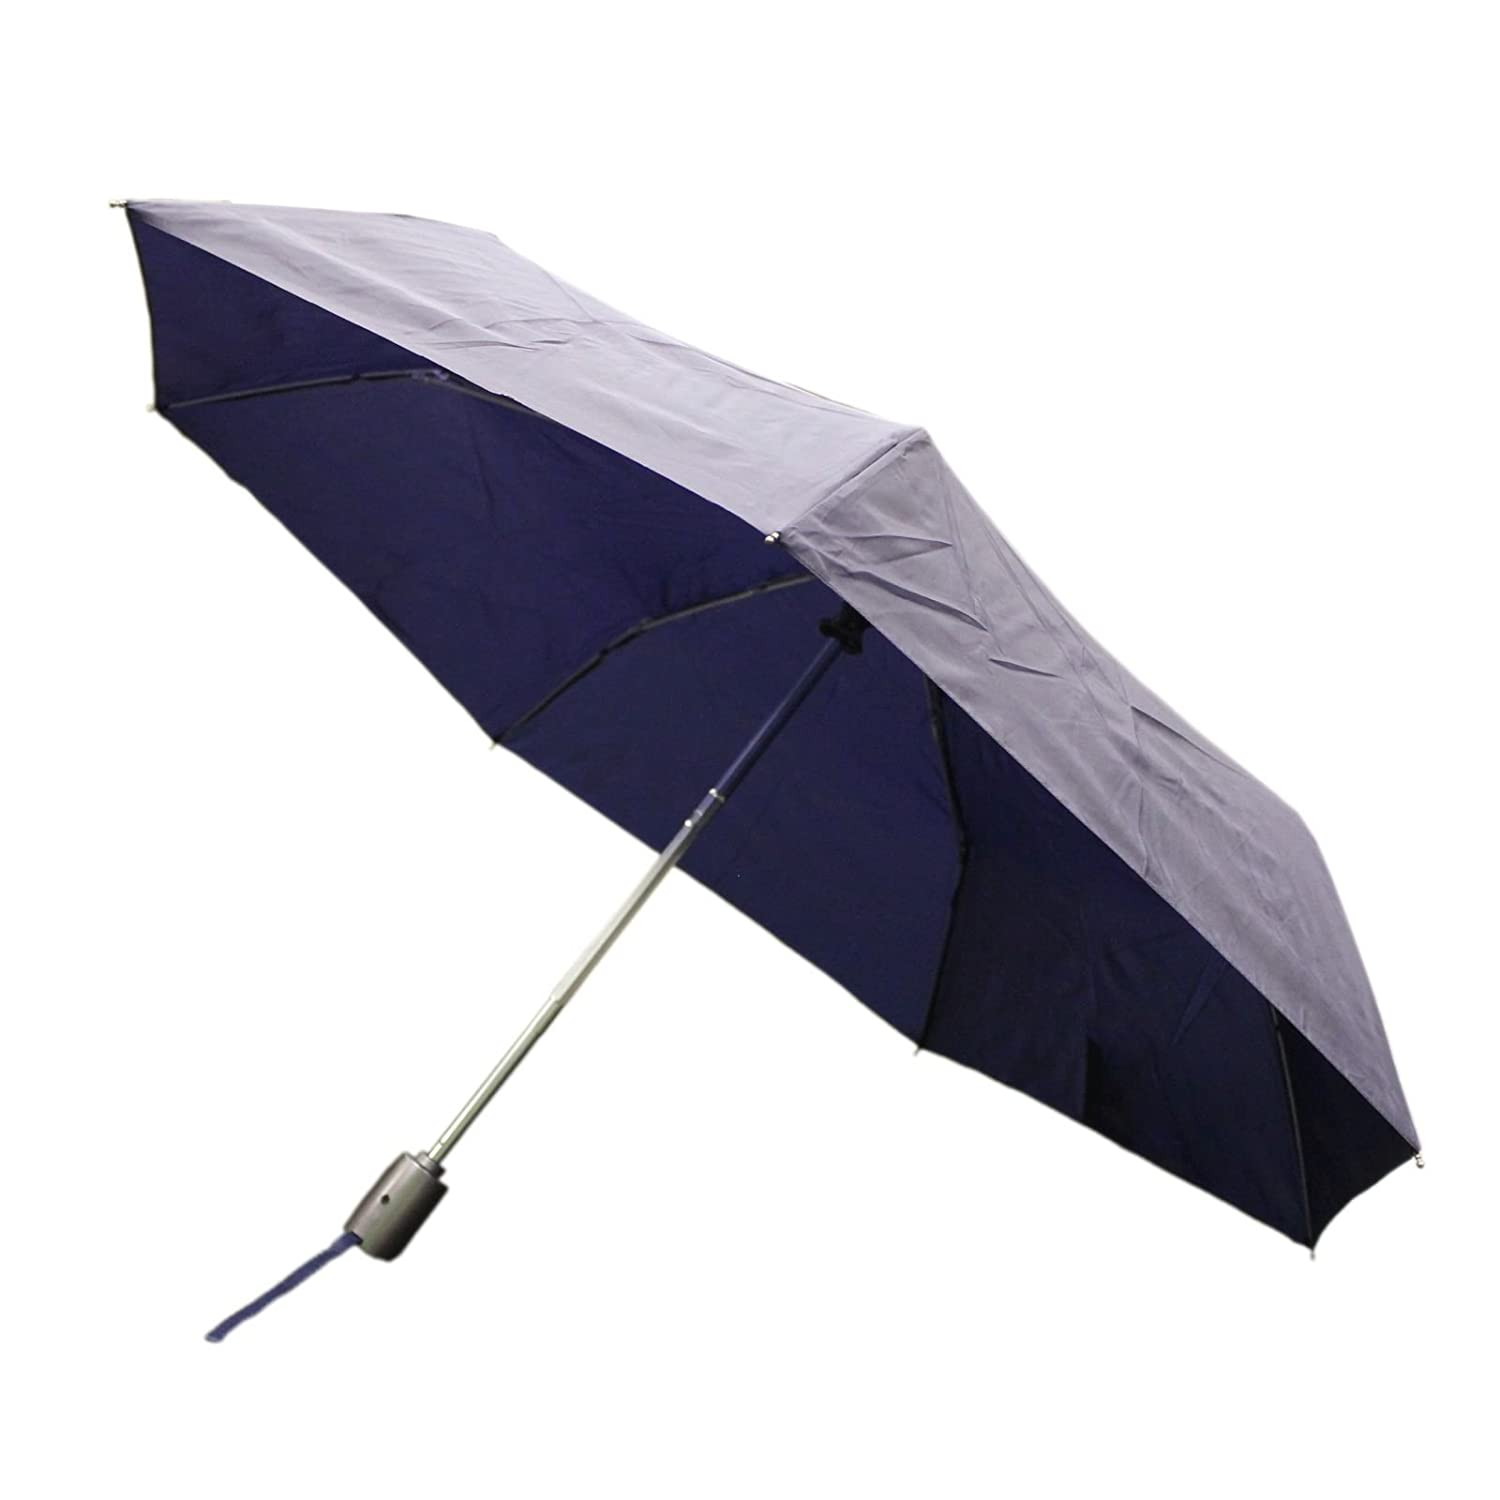 Totes Auto Open/Auto Close Umbrella w/ Grey Handle (Navy)